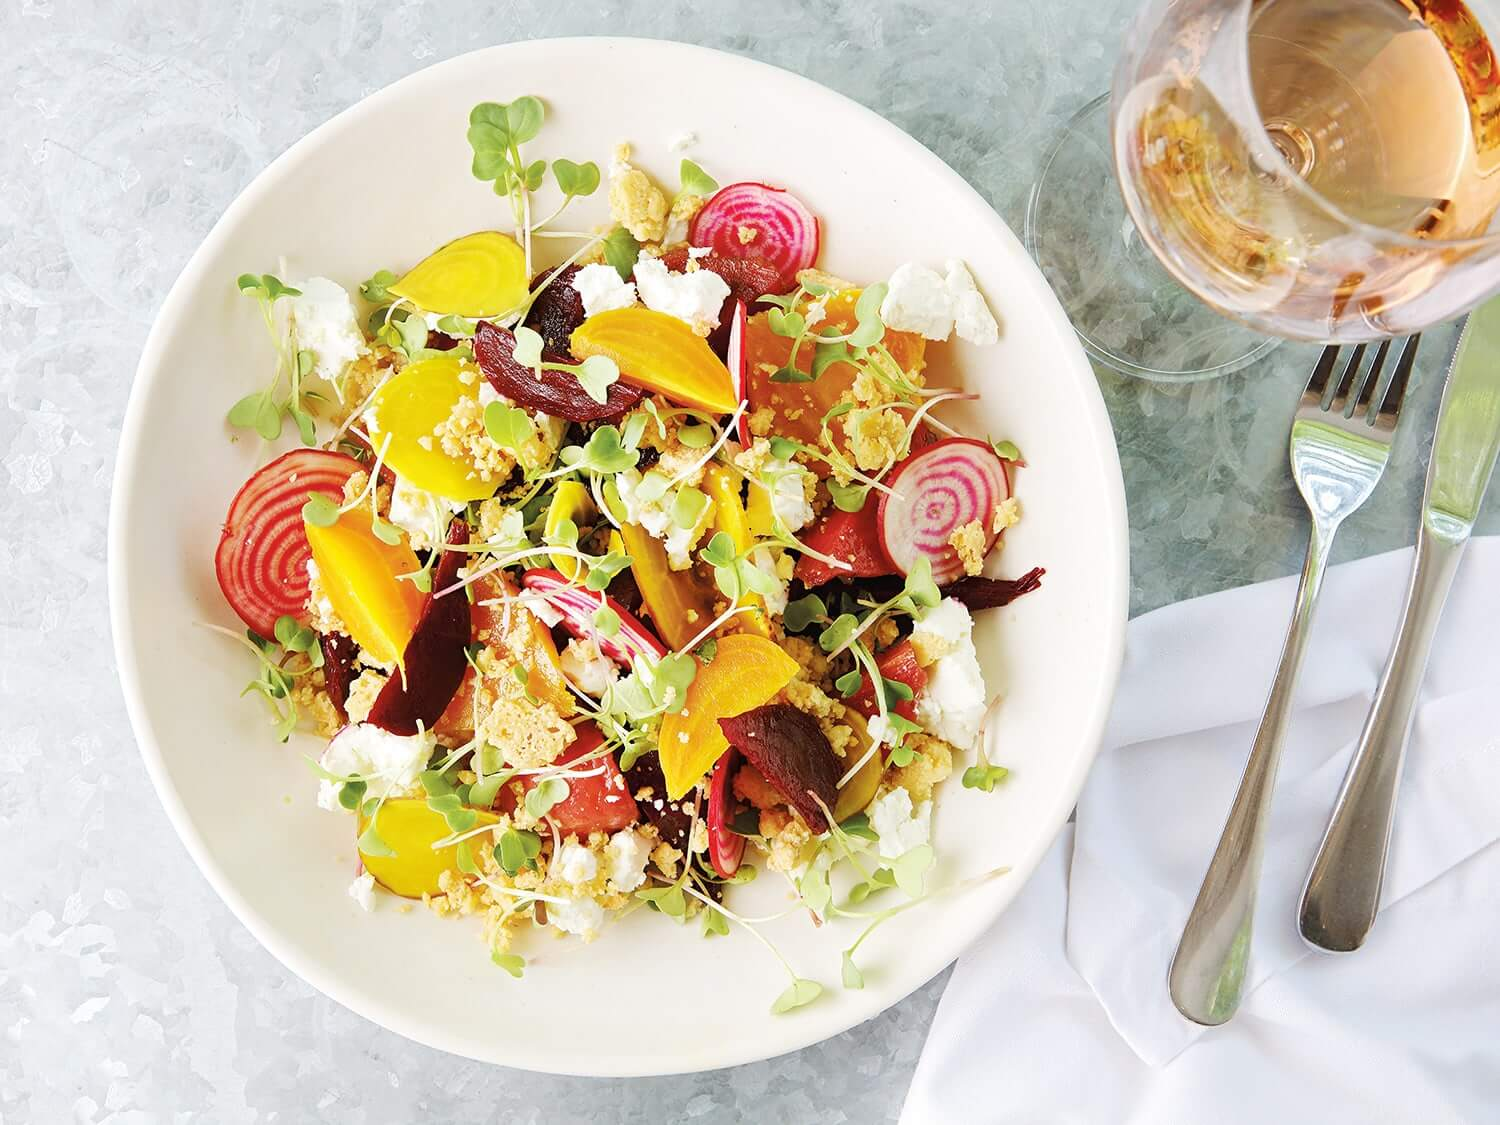 Bright and beautiful lunch salad. Photo by Elsa Young.